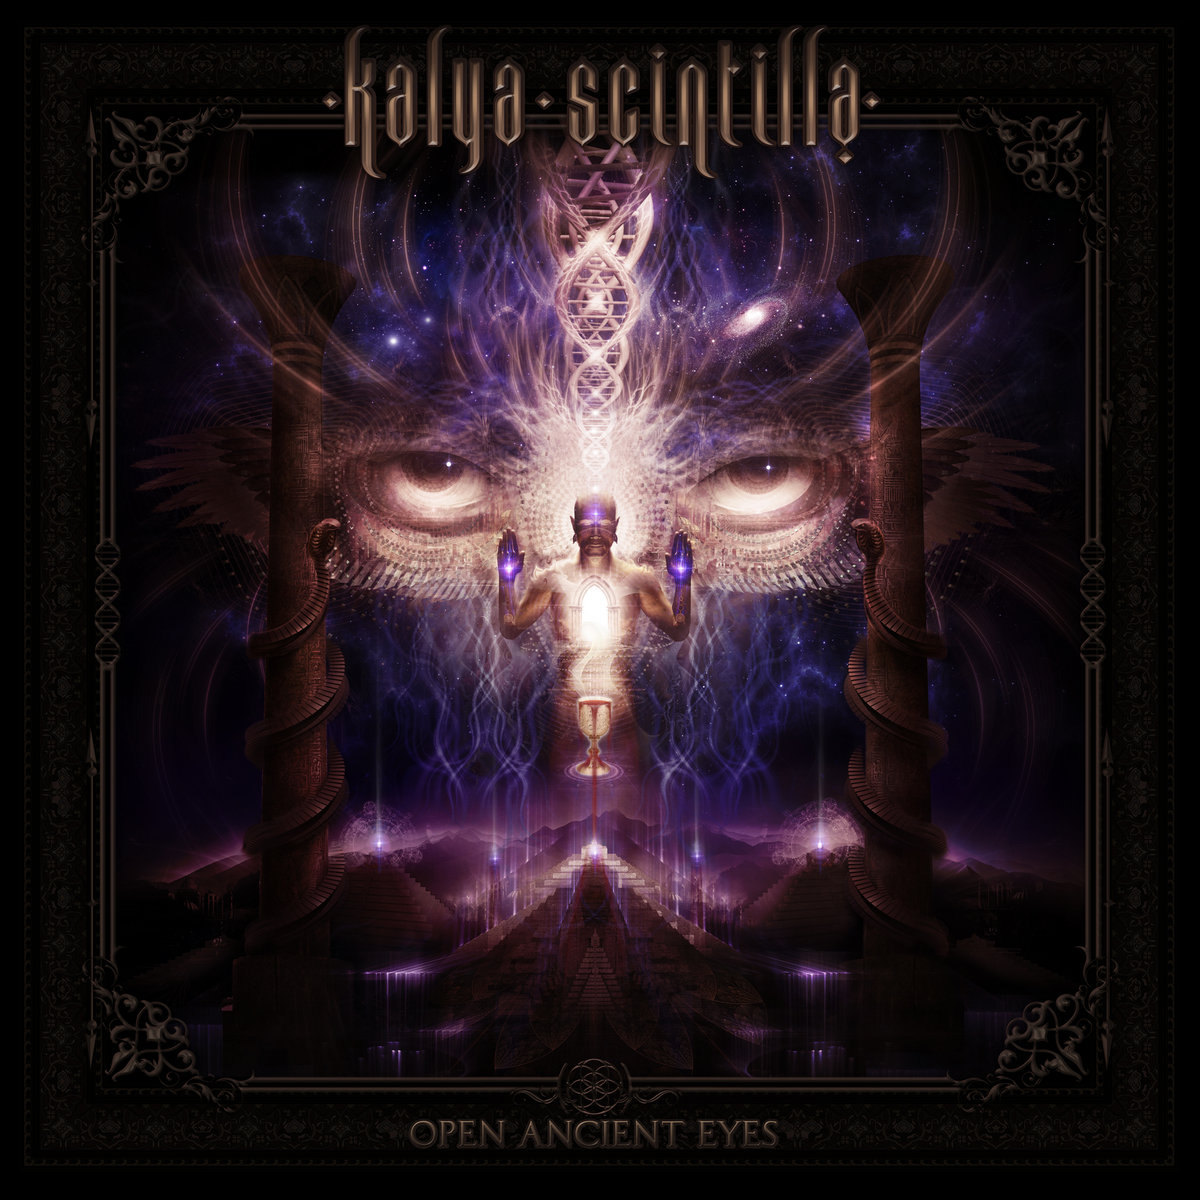 Kalya Scintilla - The Calling @ 'Open Ancient Eyes' album (432hz, electronic)